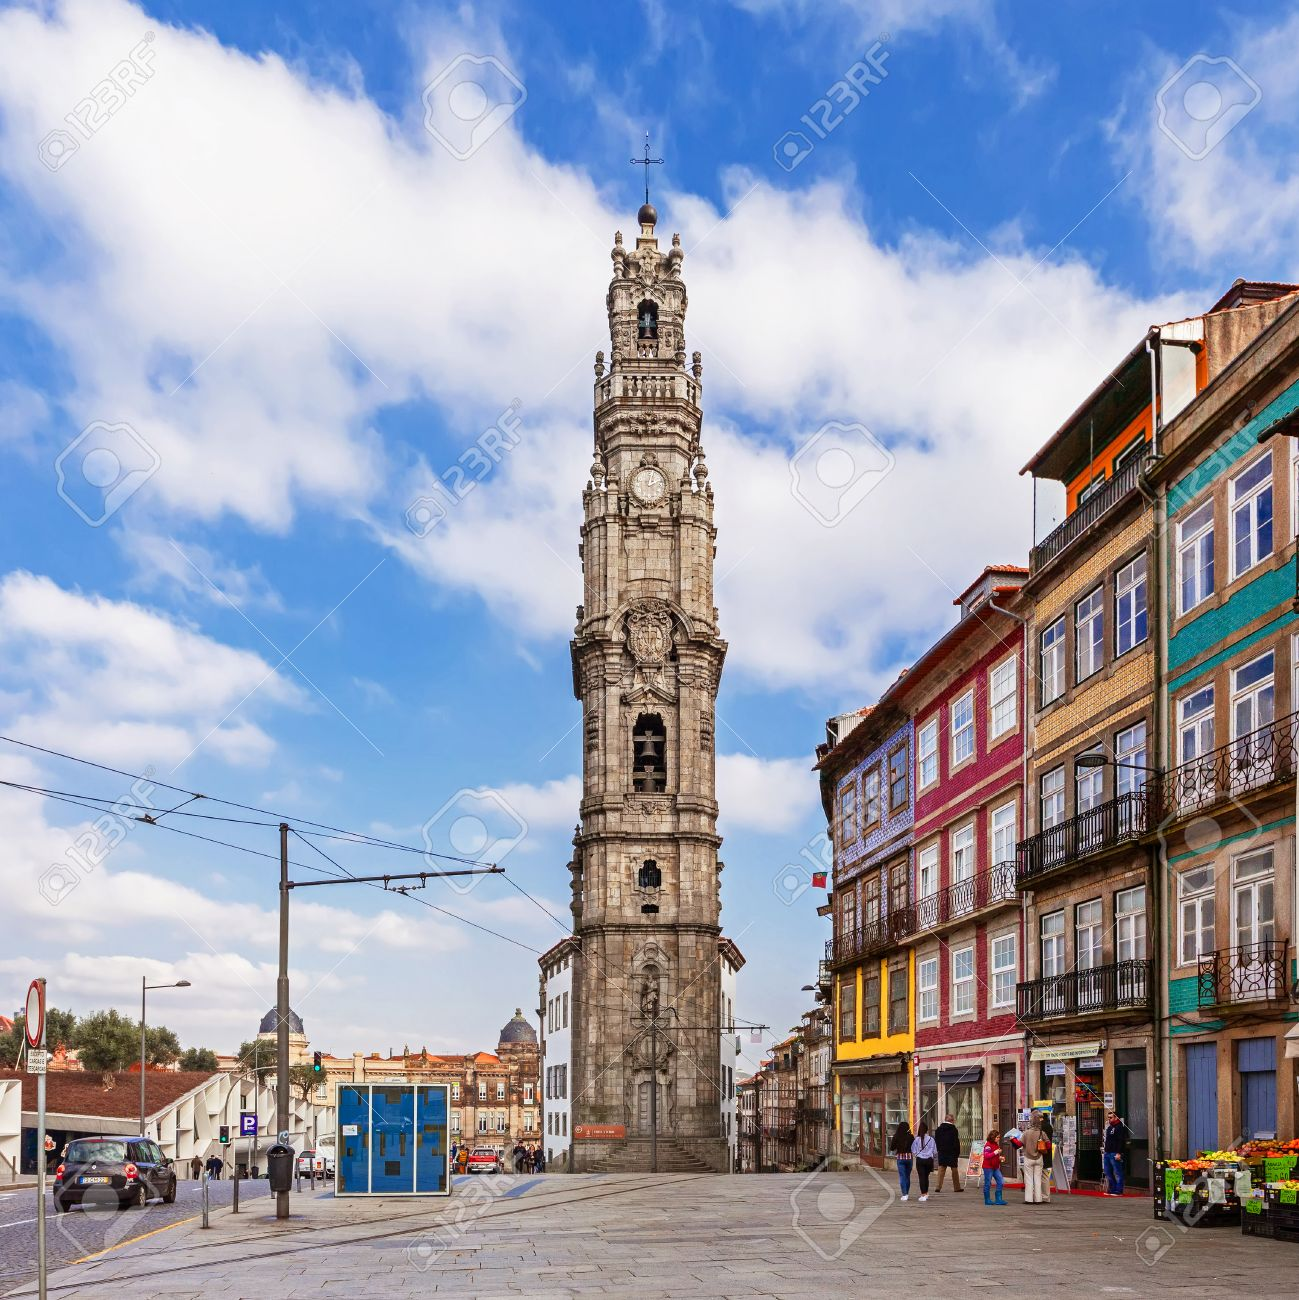 Superior Porto, Portugal. January 5, 2015: The Iconic Clerigos Tower, One Of